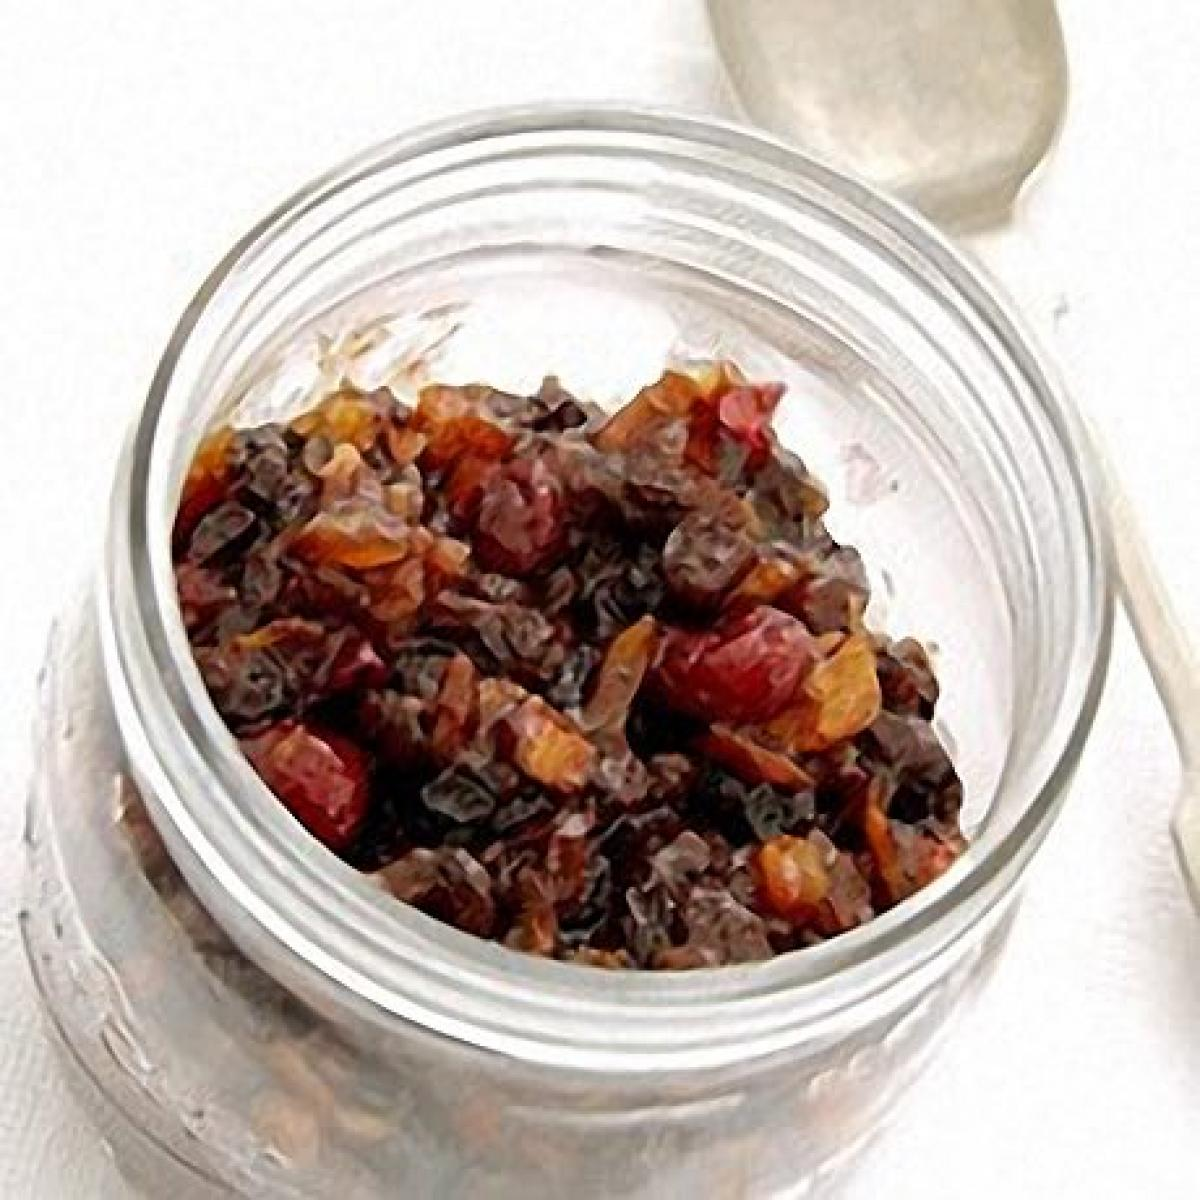 A picture of Delia's Home-made Christmas Mincemeat with Cranberries recipe